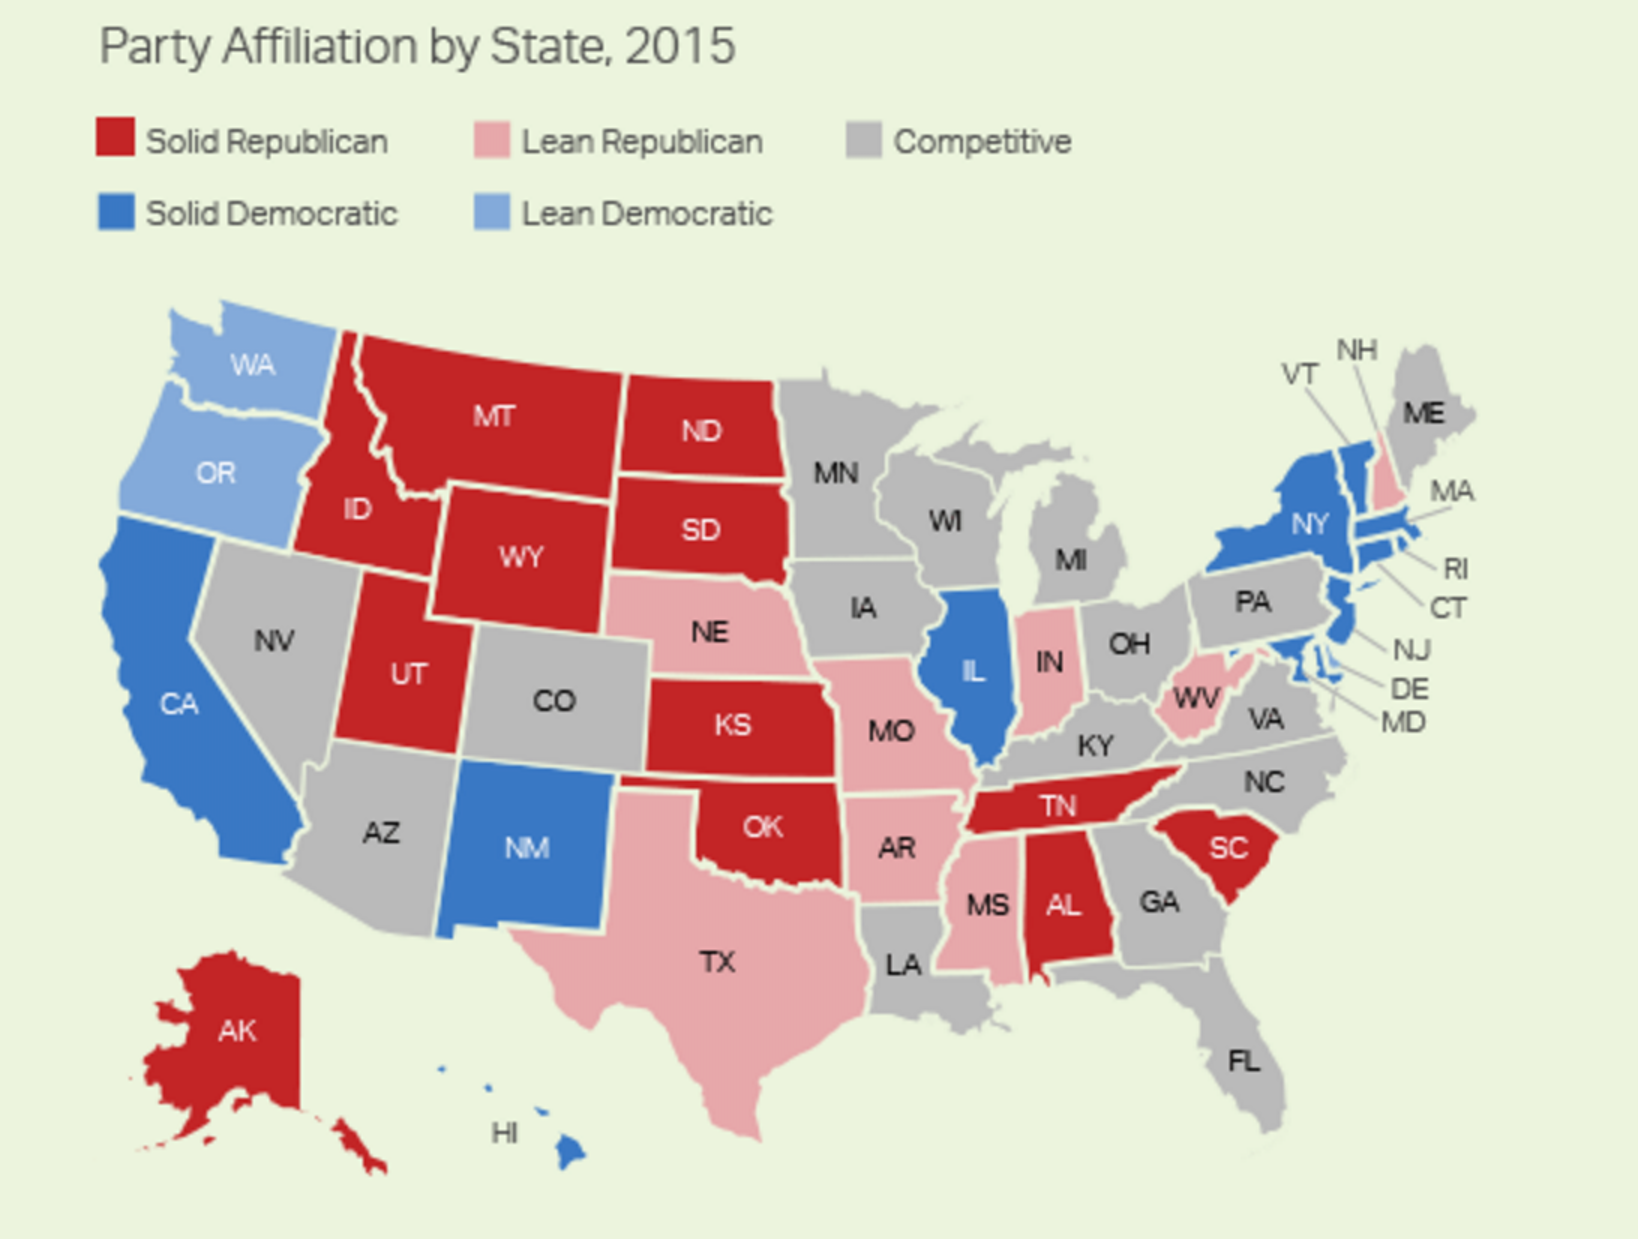 Party affiliation by state.